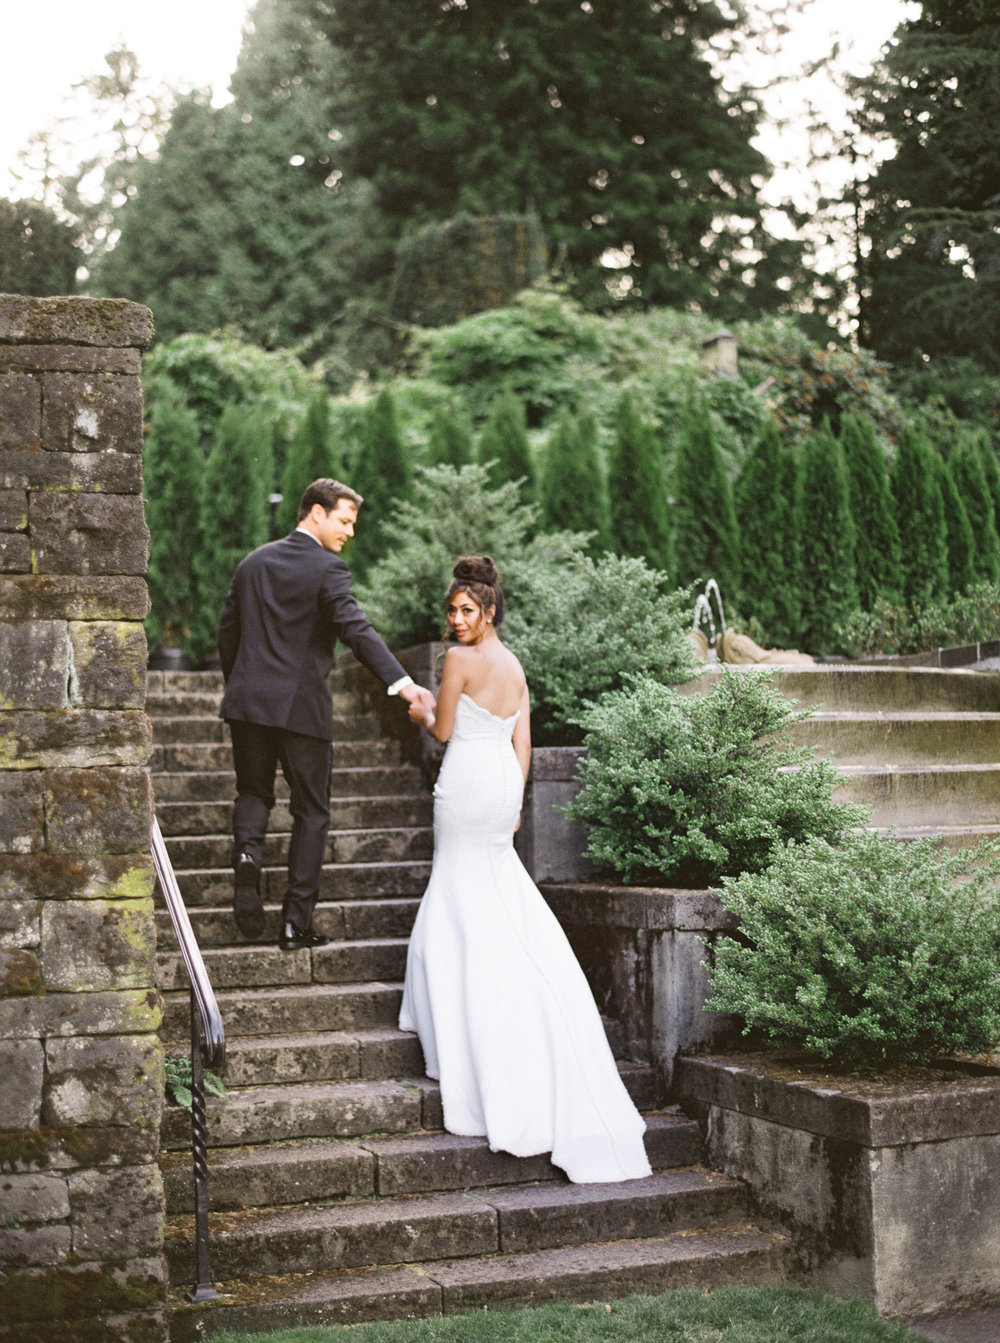 089OutliveCreative_Travel_Photographer_Videographer_Lewis&Clark_Oregon_Elegant_BlackTie_Destination_Wedding.jpg